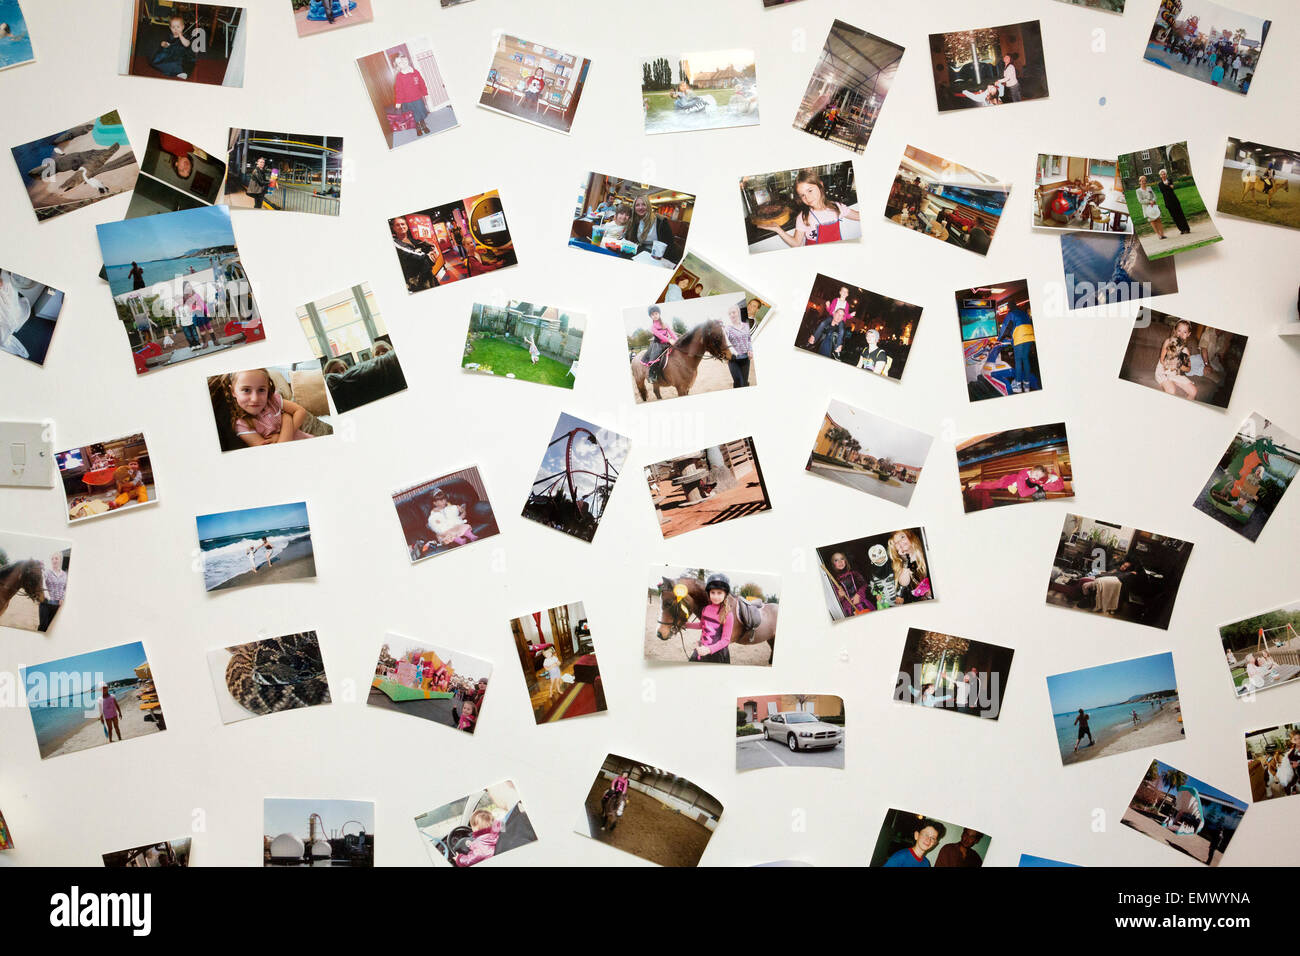 collection of photos on wall - Stock Image